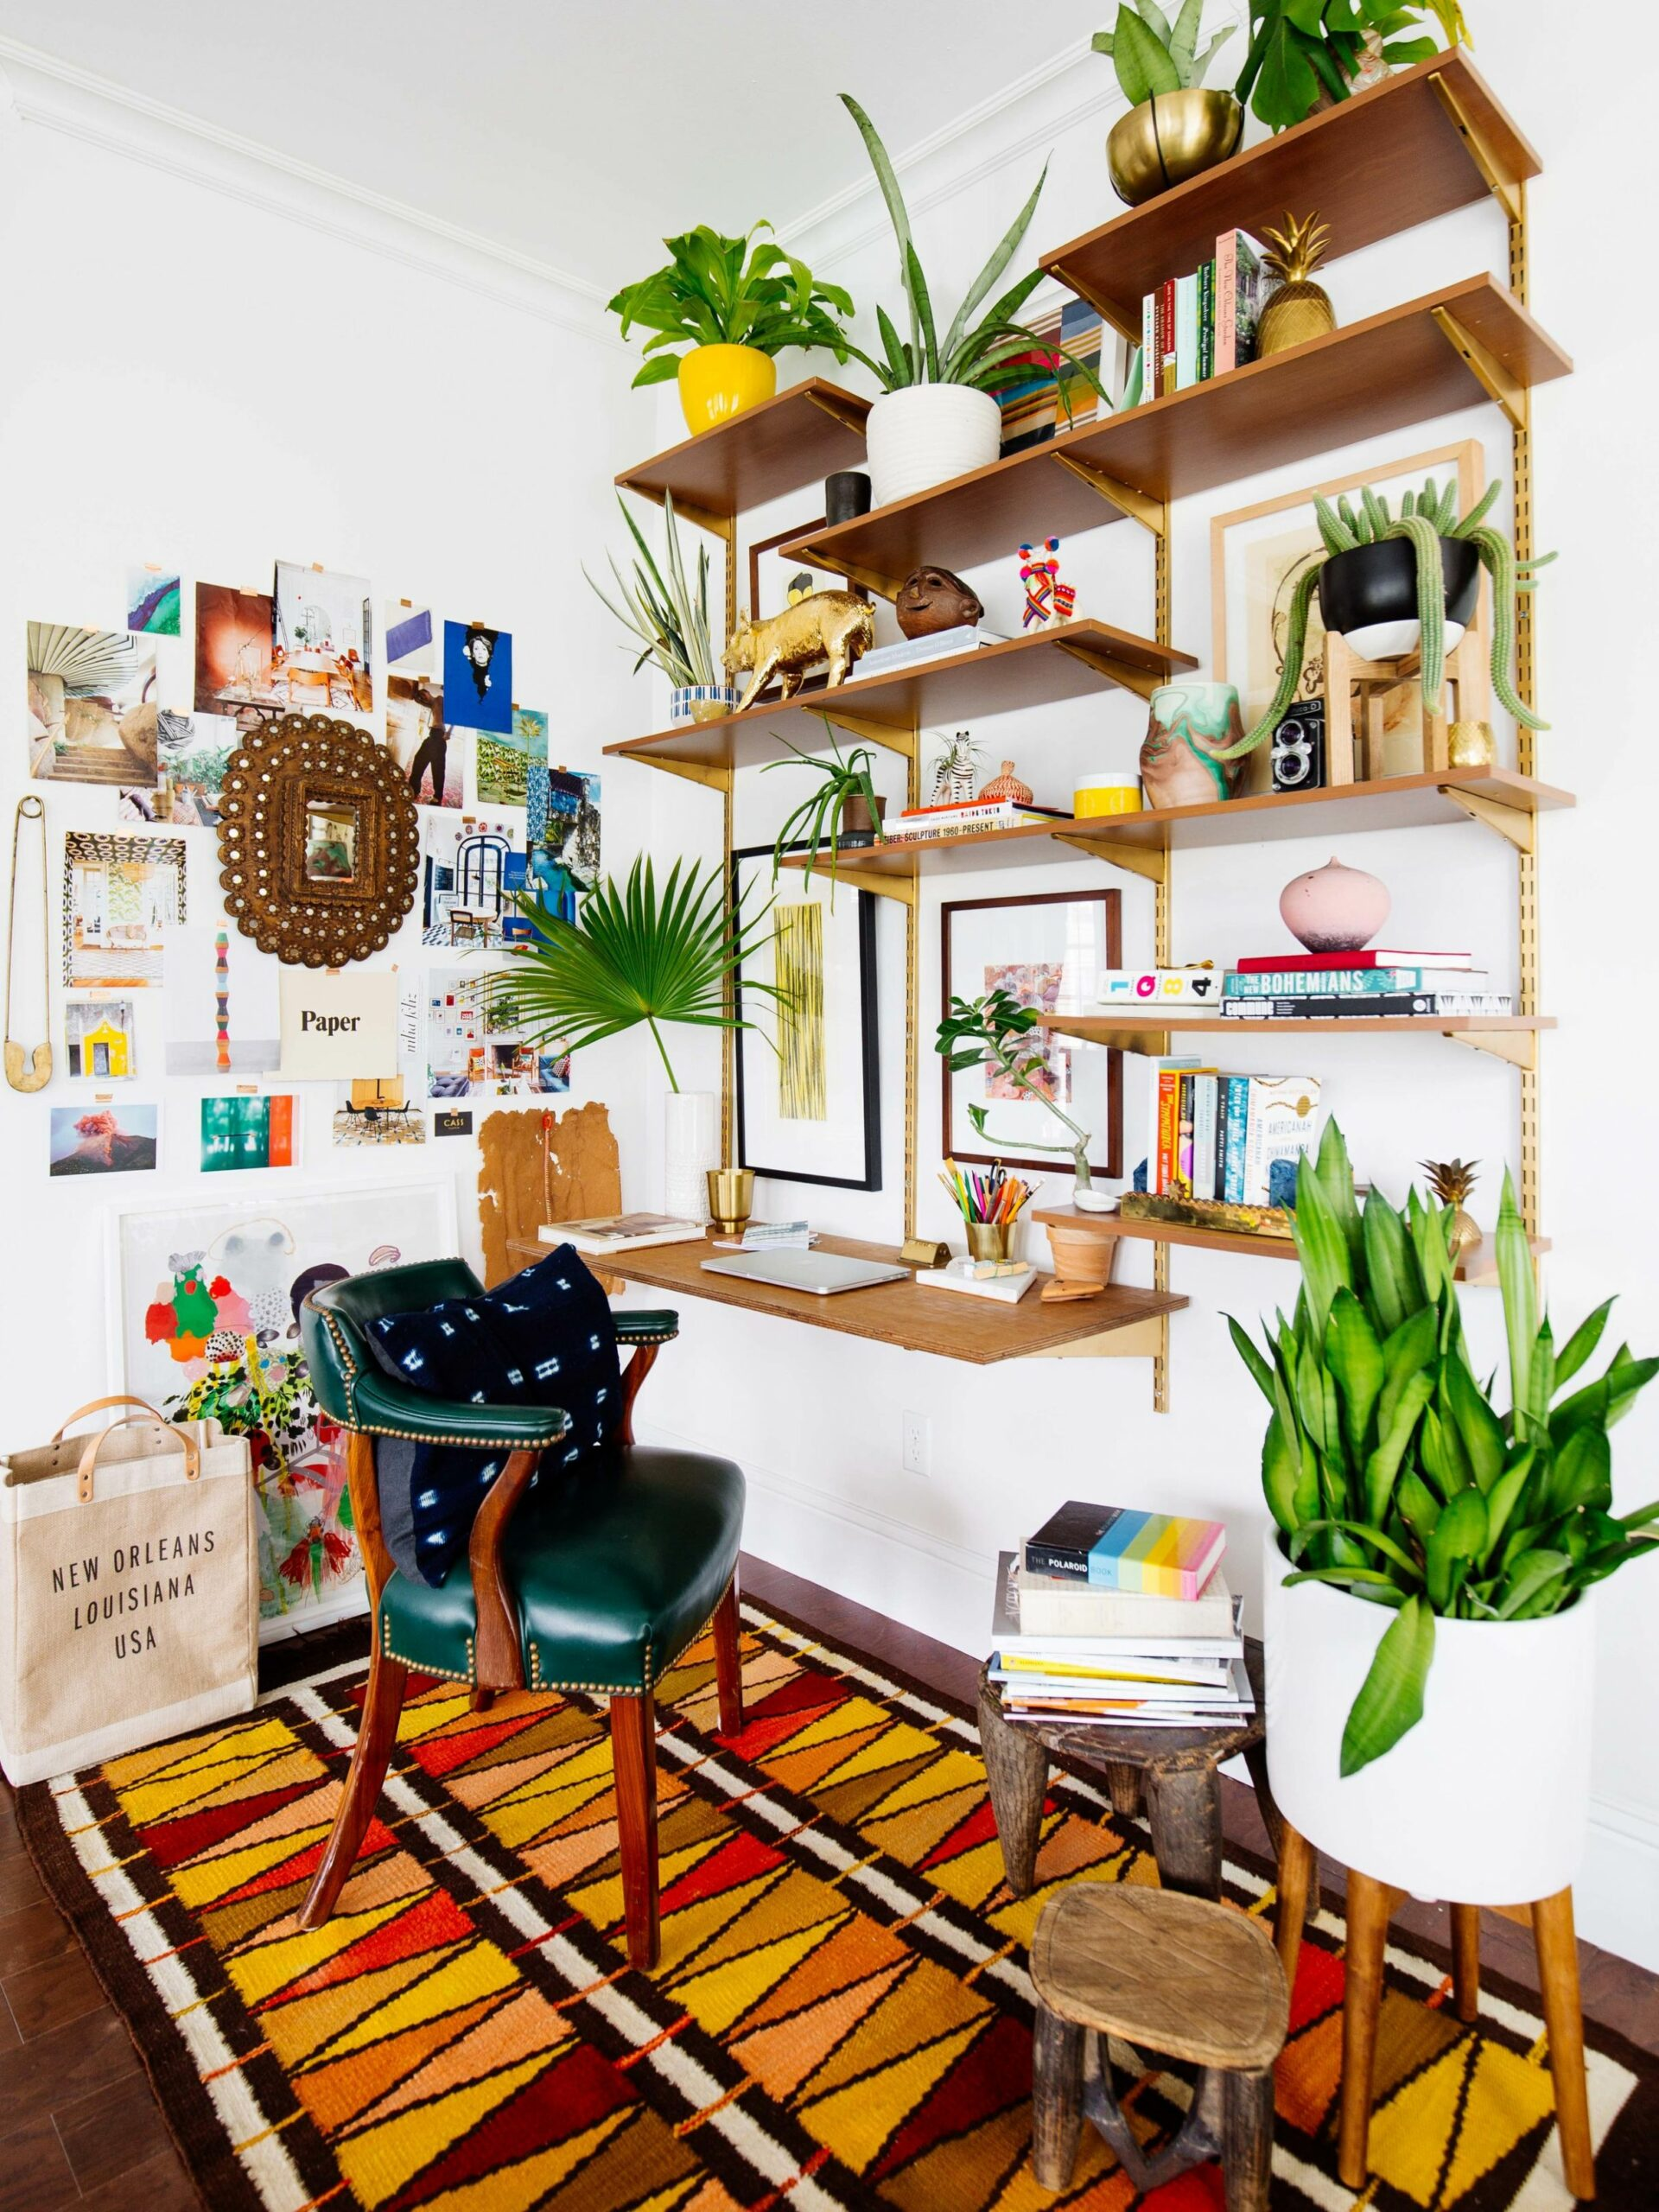 Home Office Decor: Create a Stunning Workspace | The Turquoise Home